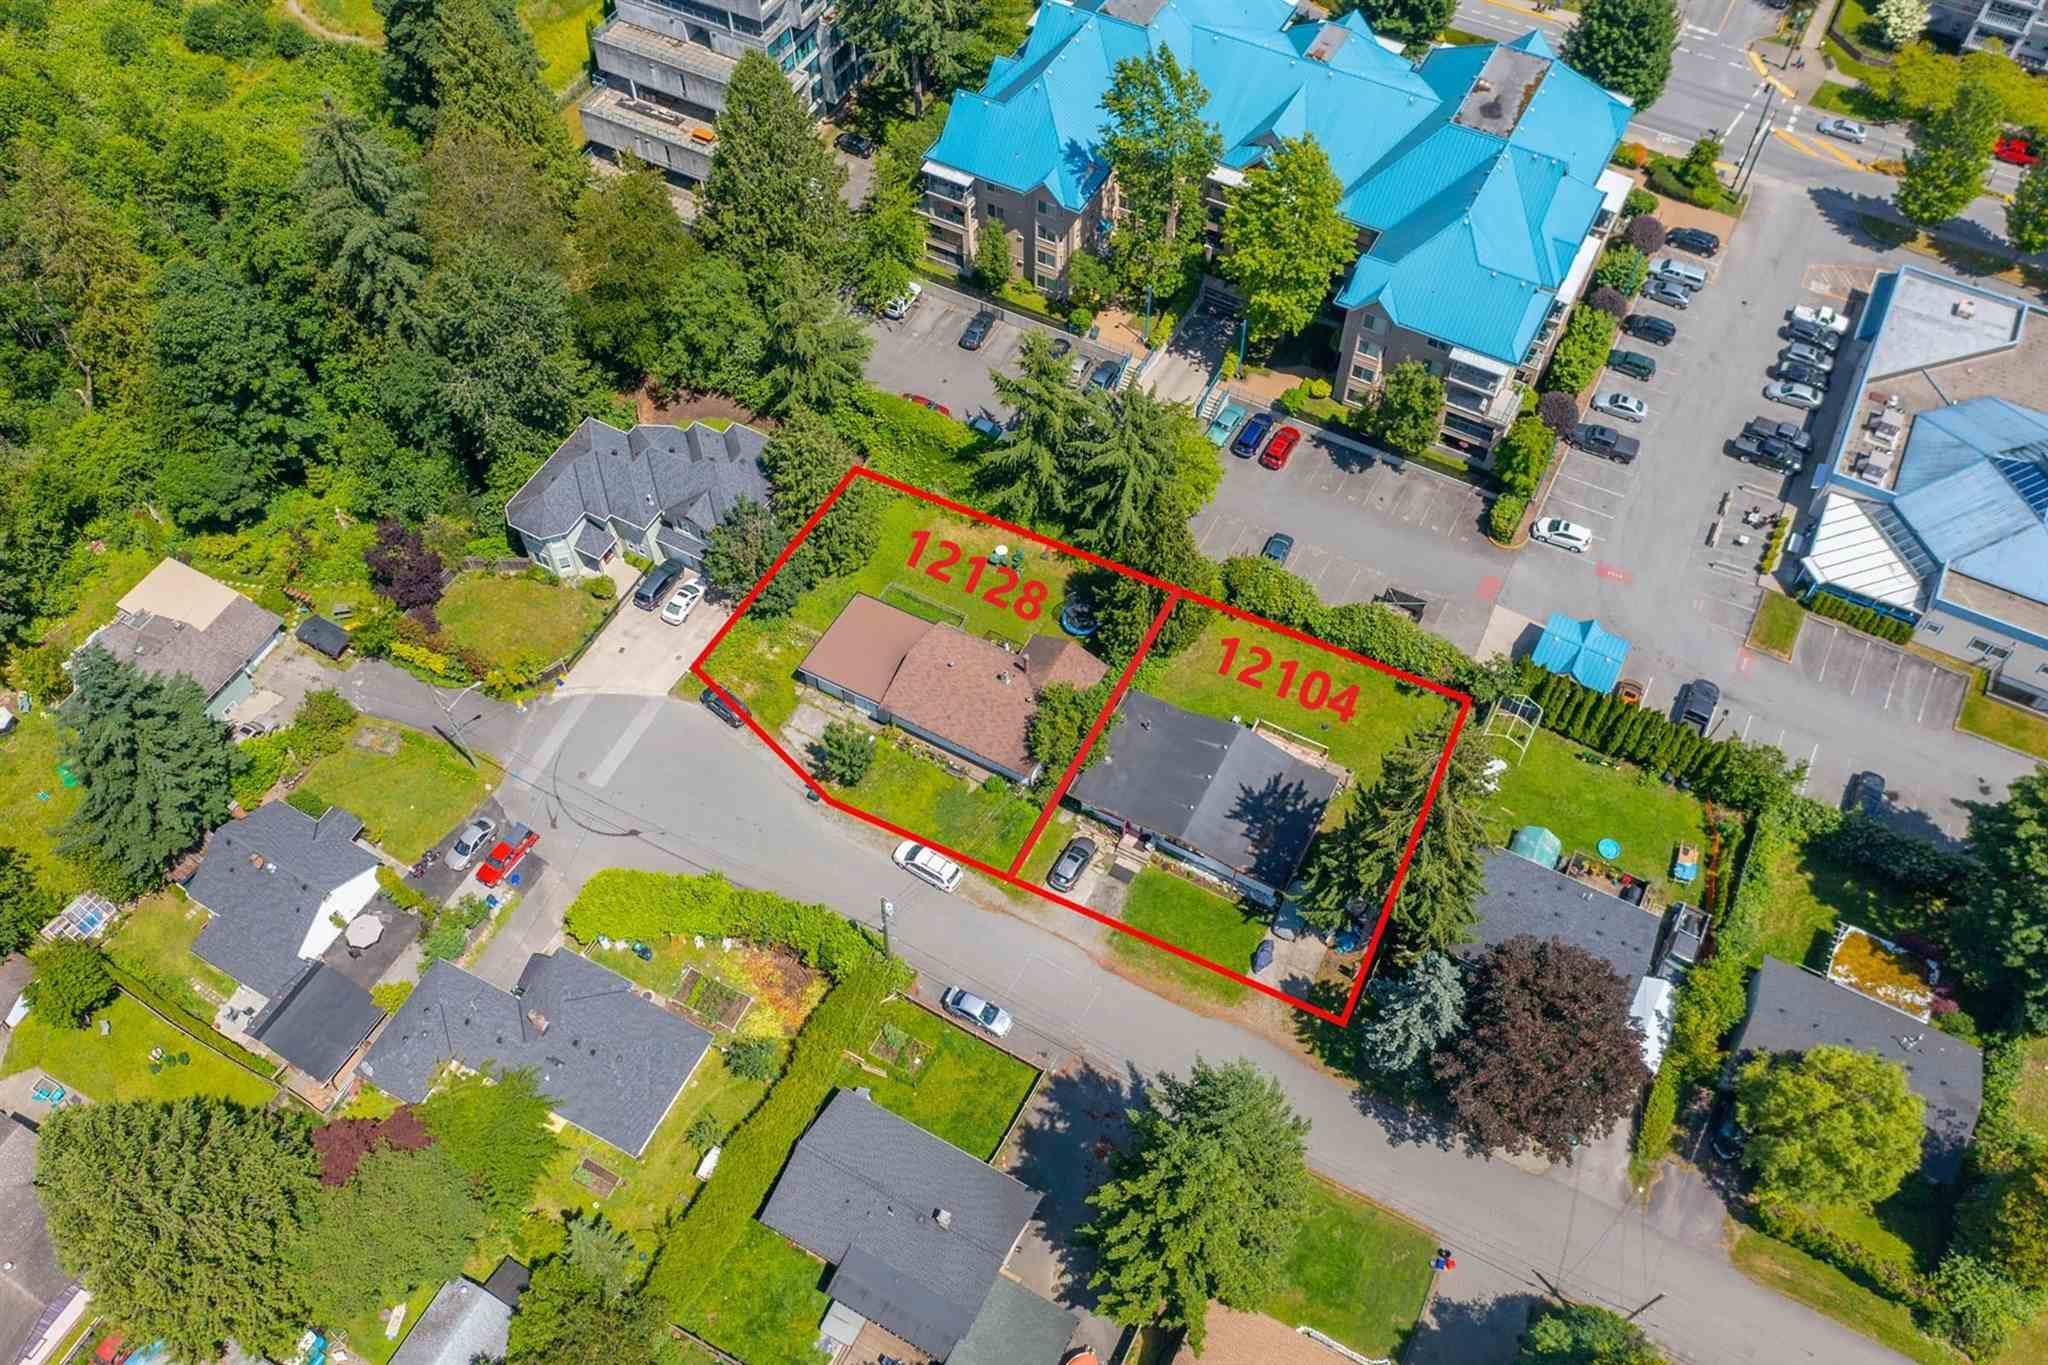 Main Photo: 12104 GARDEN Street in Maple Ridge: West Central House for sale : MLS®# R2599607